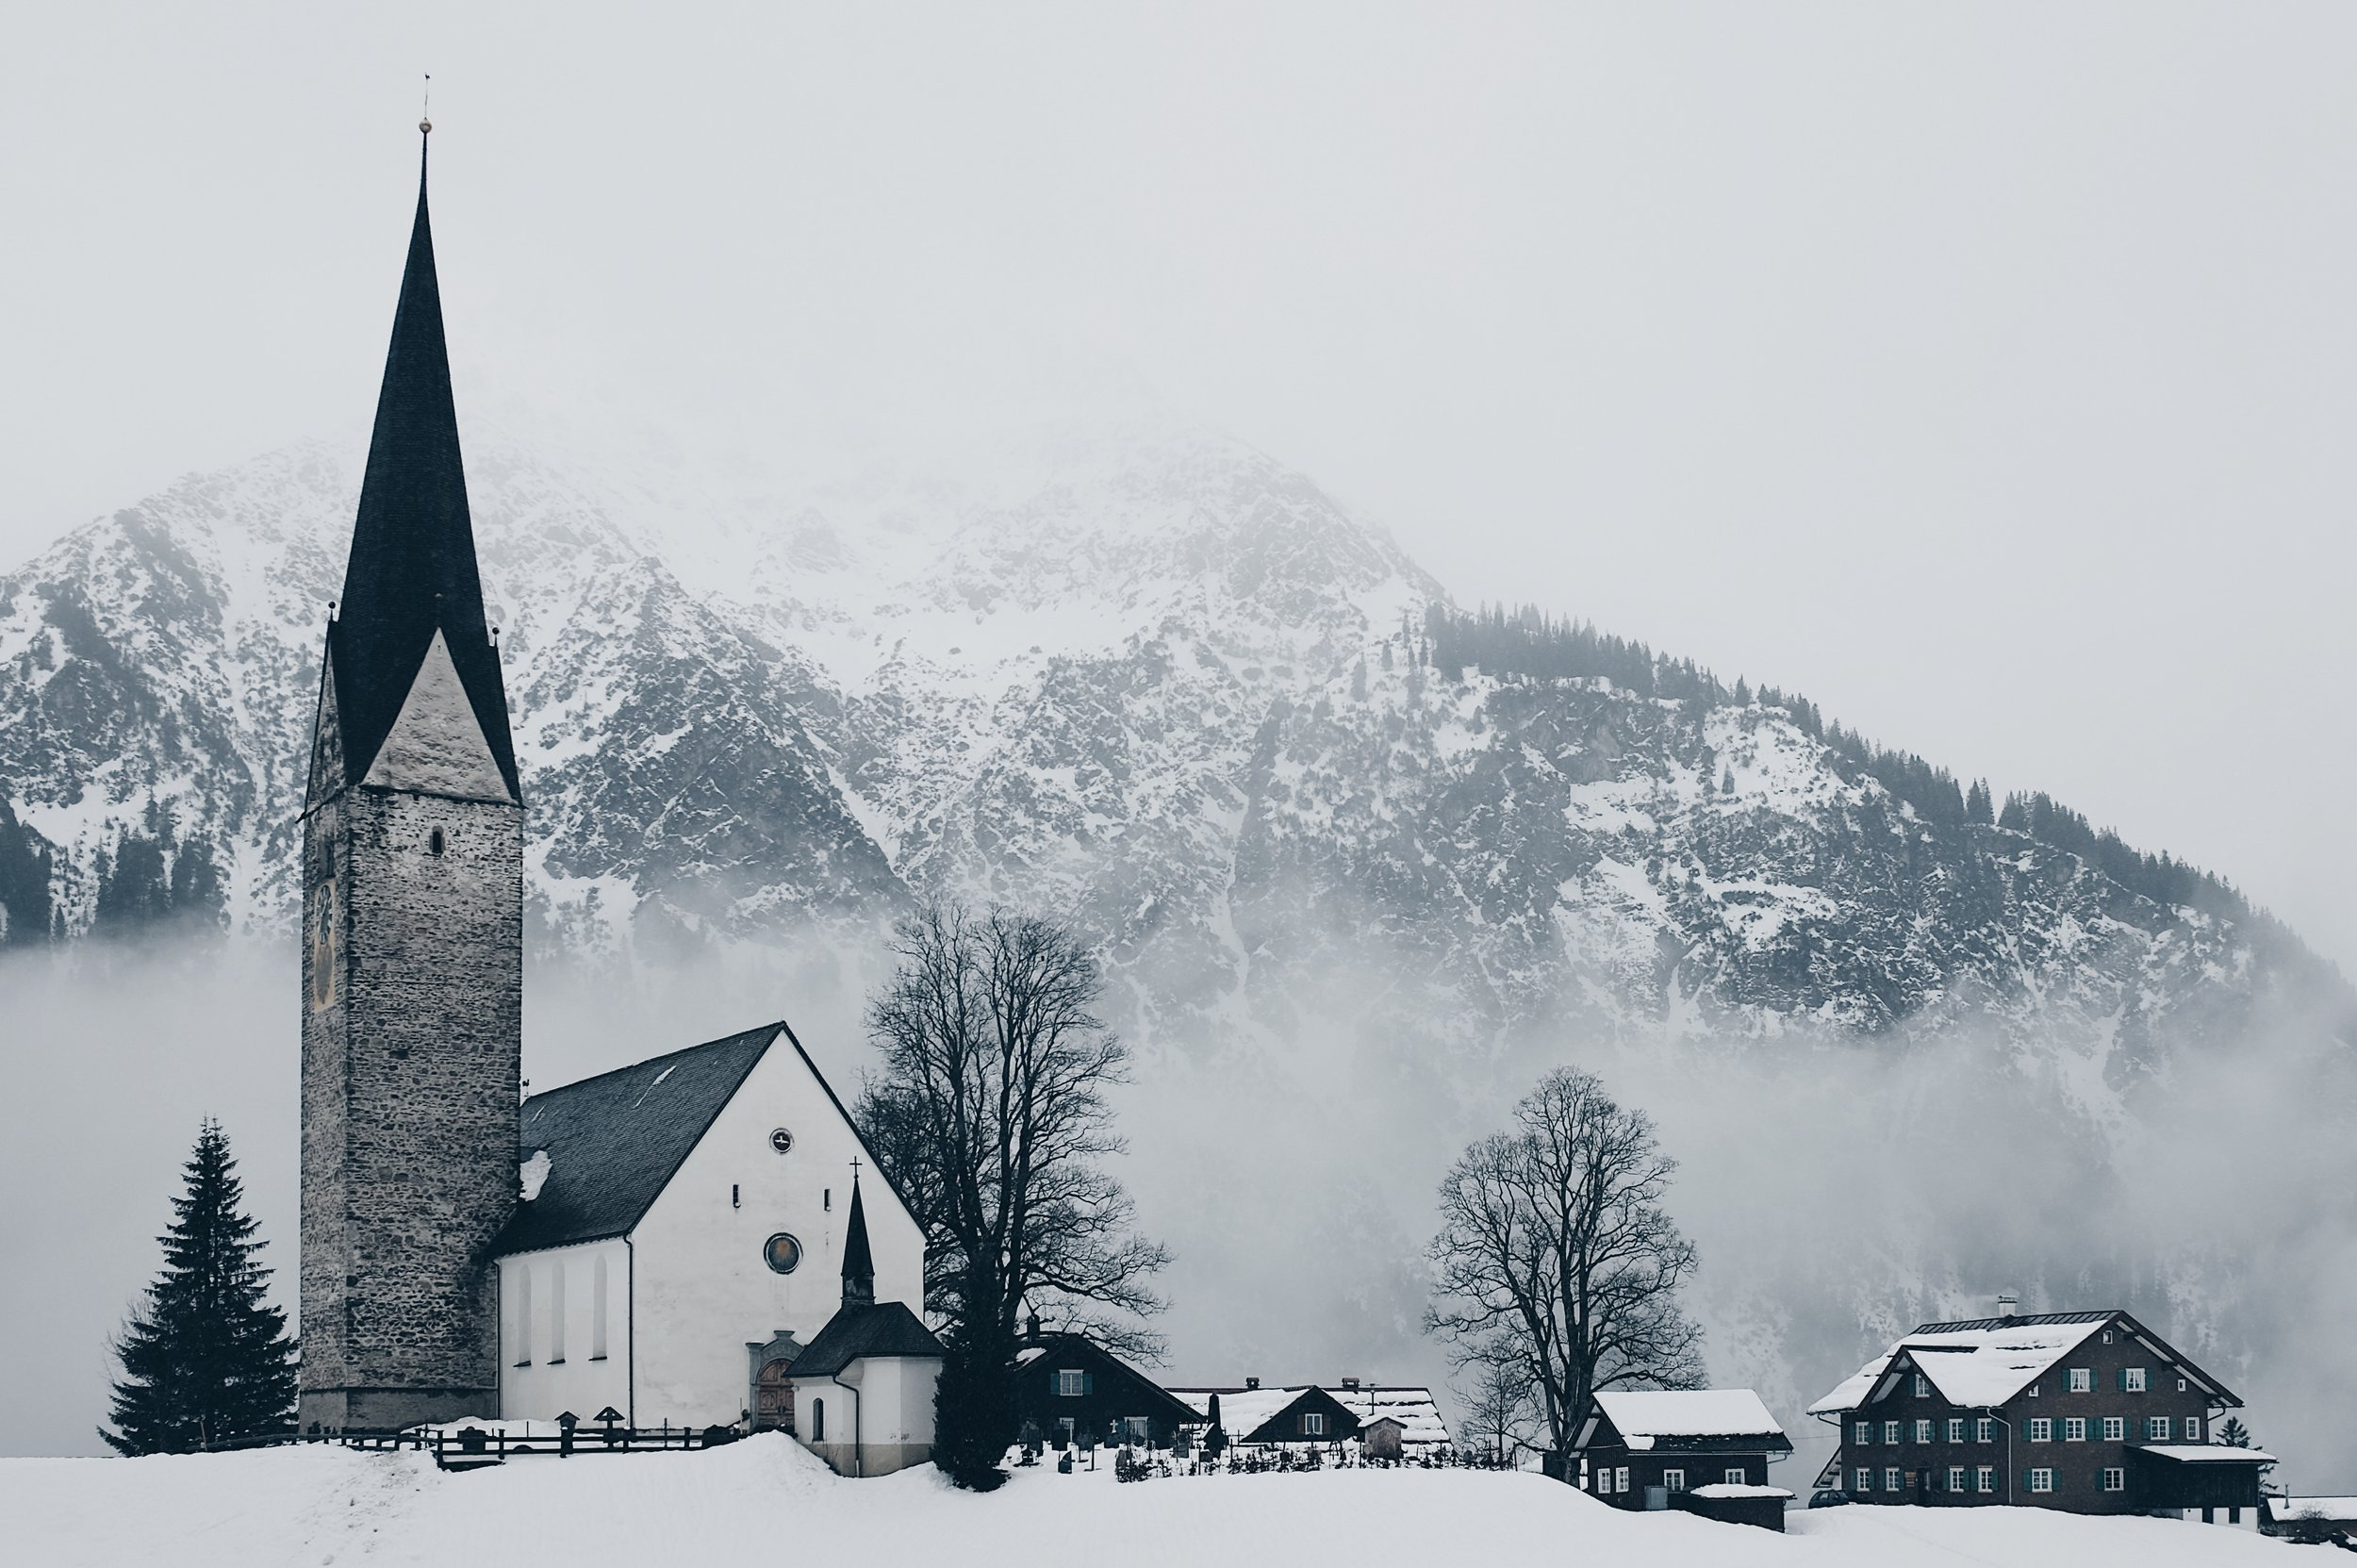 A stone chapel on a snowy winter night, with hilly mountains in the background.